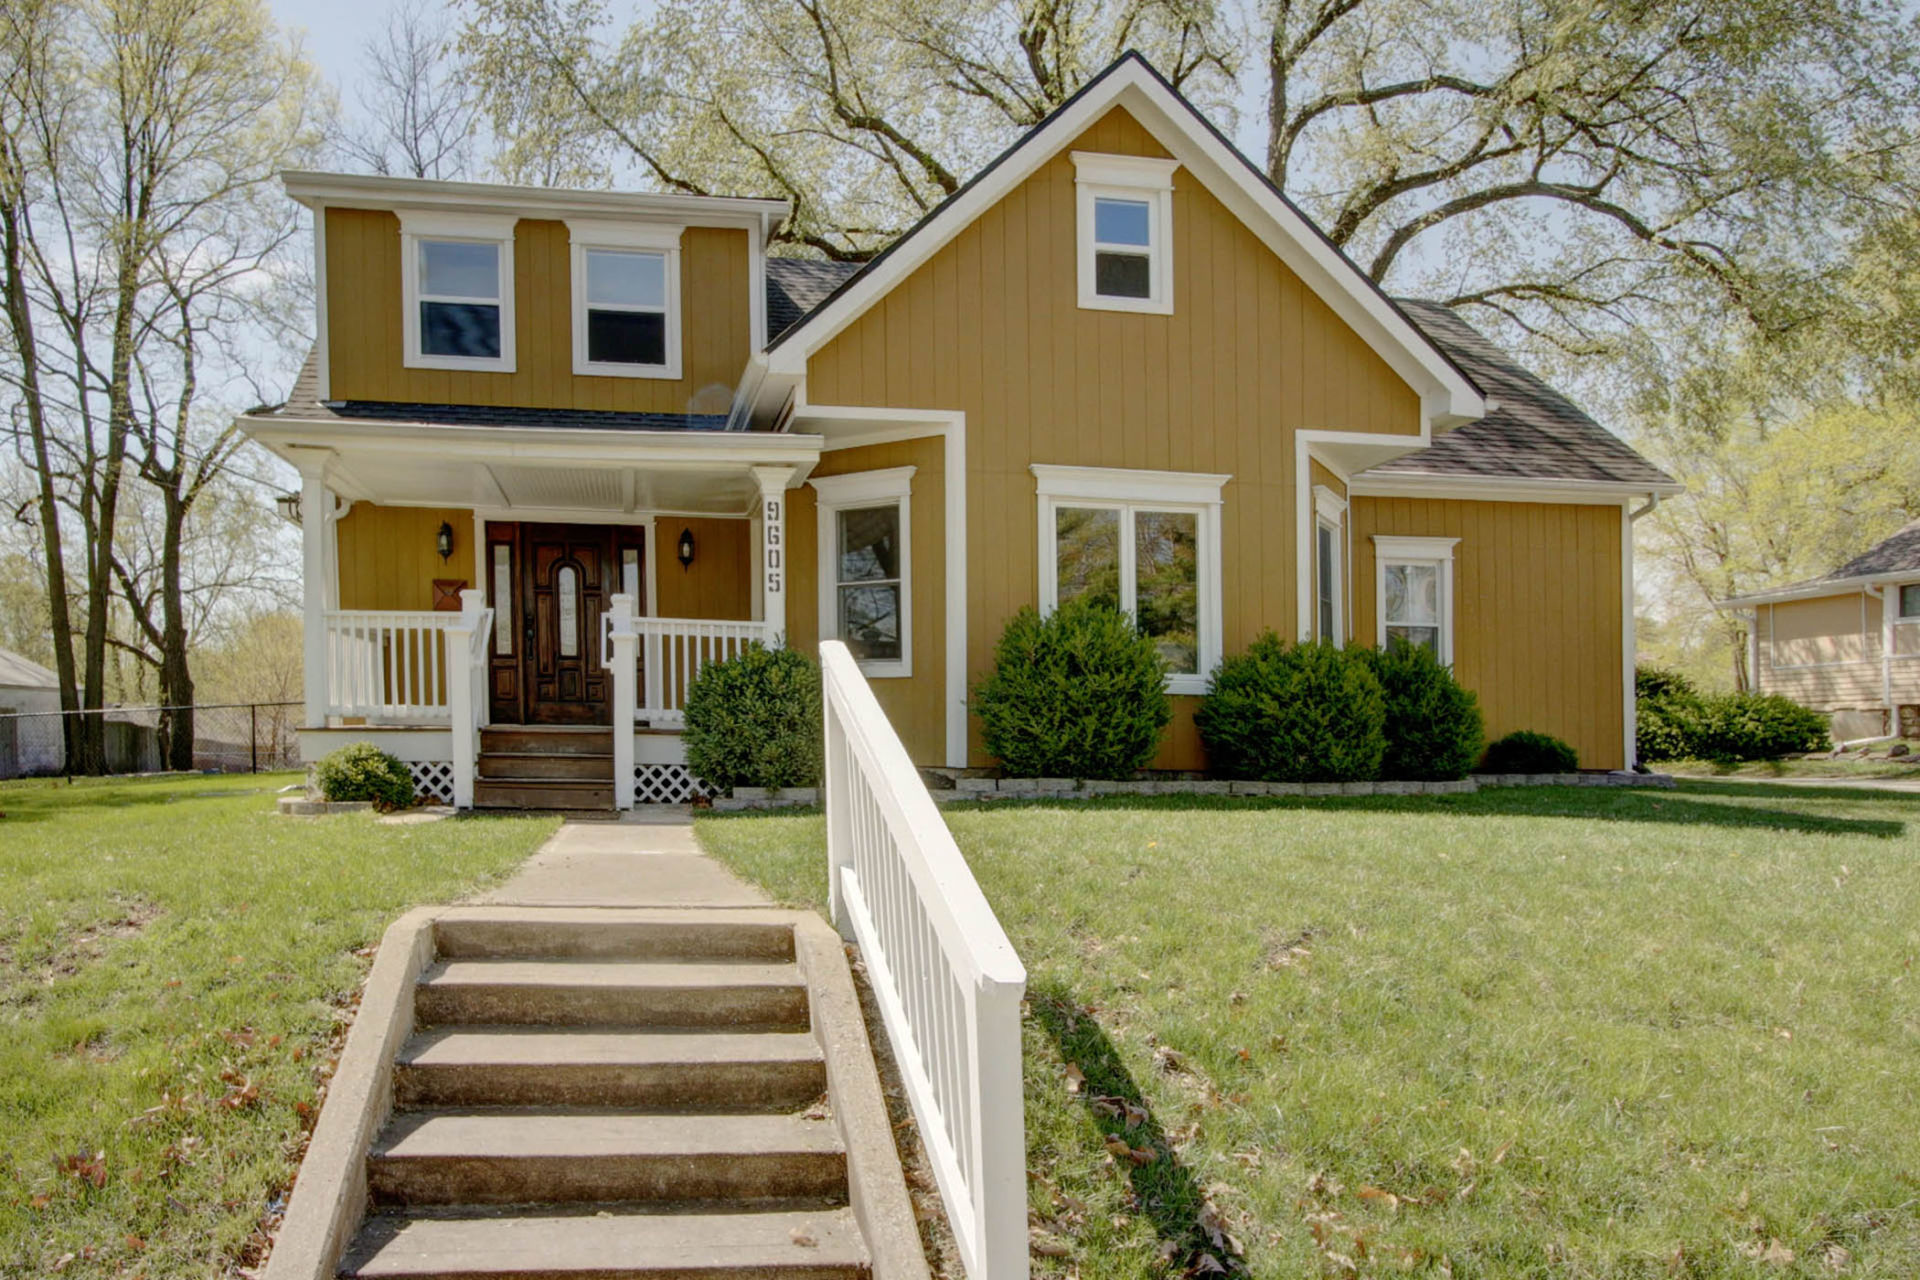 JUST LISTED! 2 OPEN HOUSES! Updated and Now Urban 1920's Farmhouse!